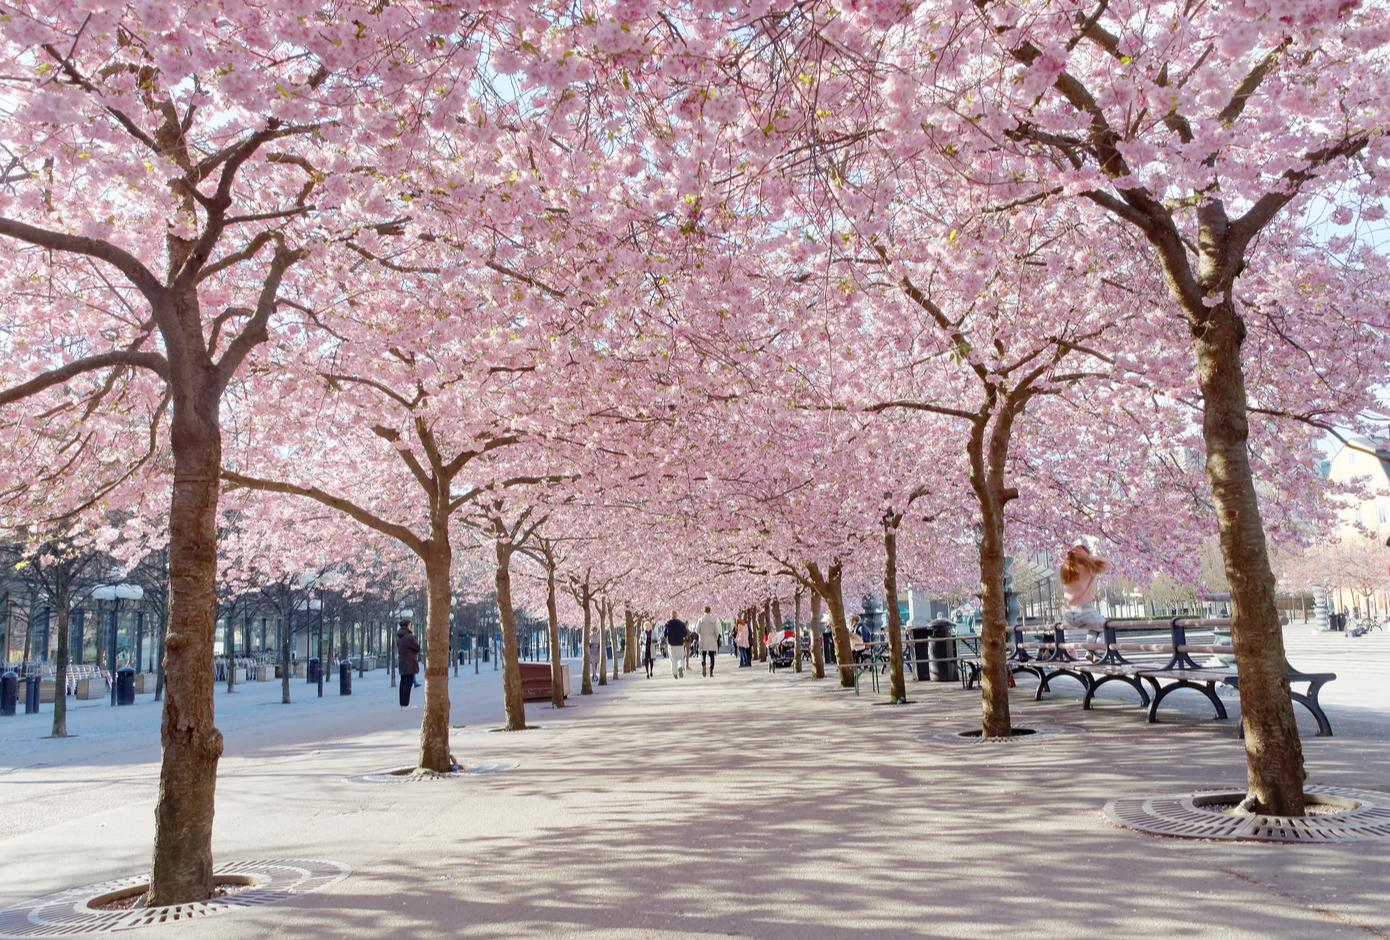 Kungstradgarden with a blooming cherry tree avenue, in Stockholm.